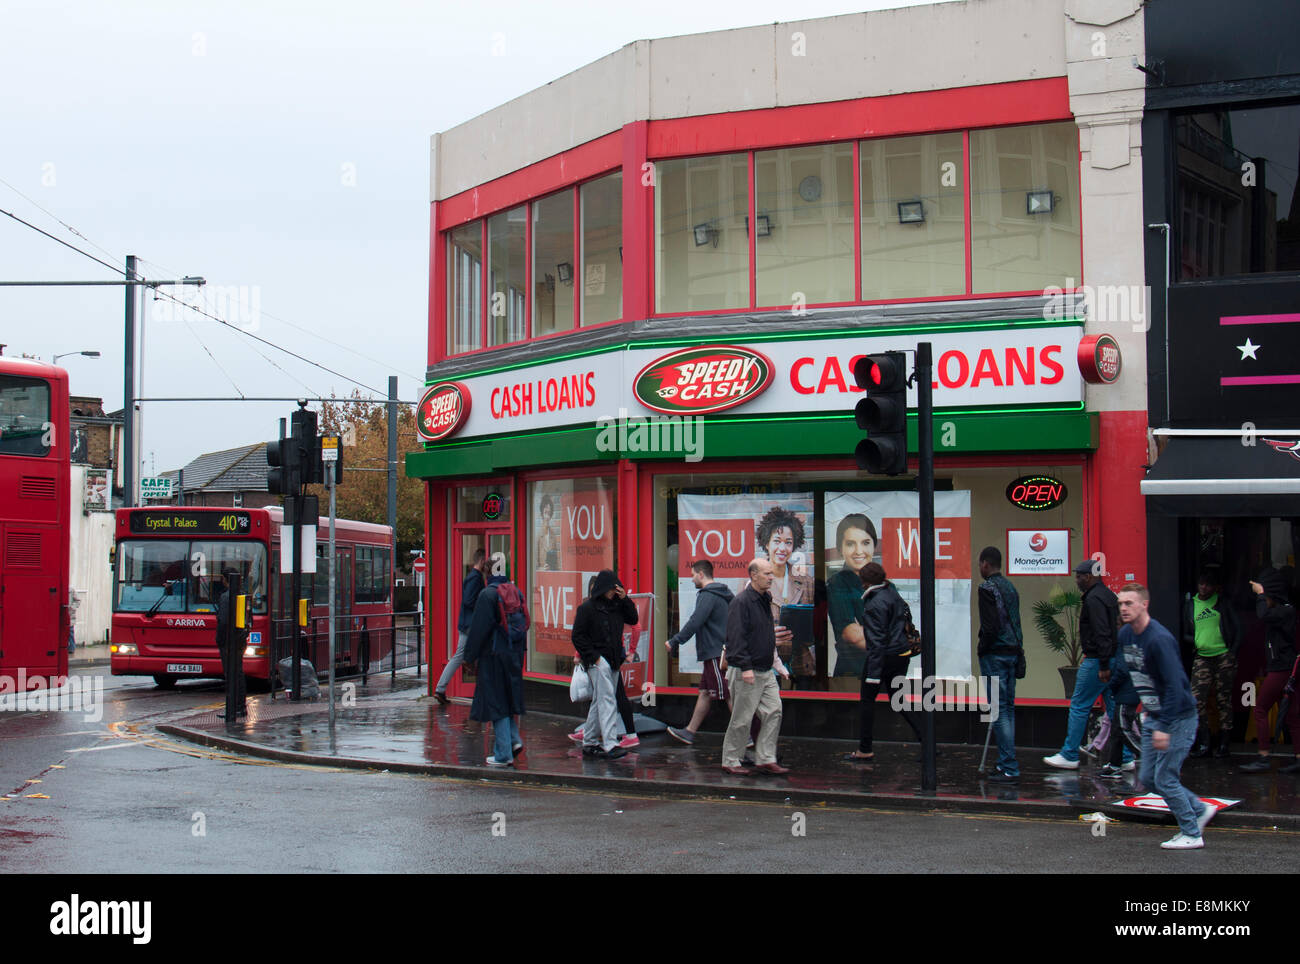 A Speedy Cash cash loans shop, Croydon, South London, UK - Stock Image